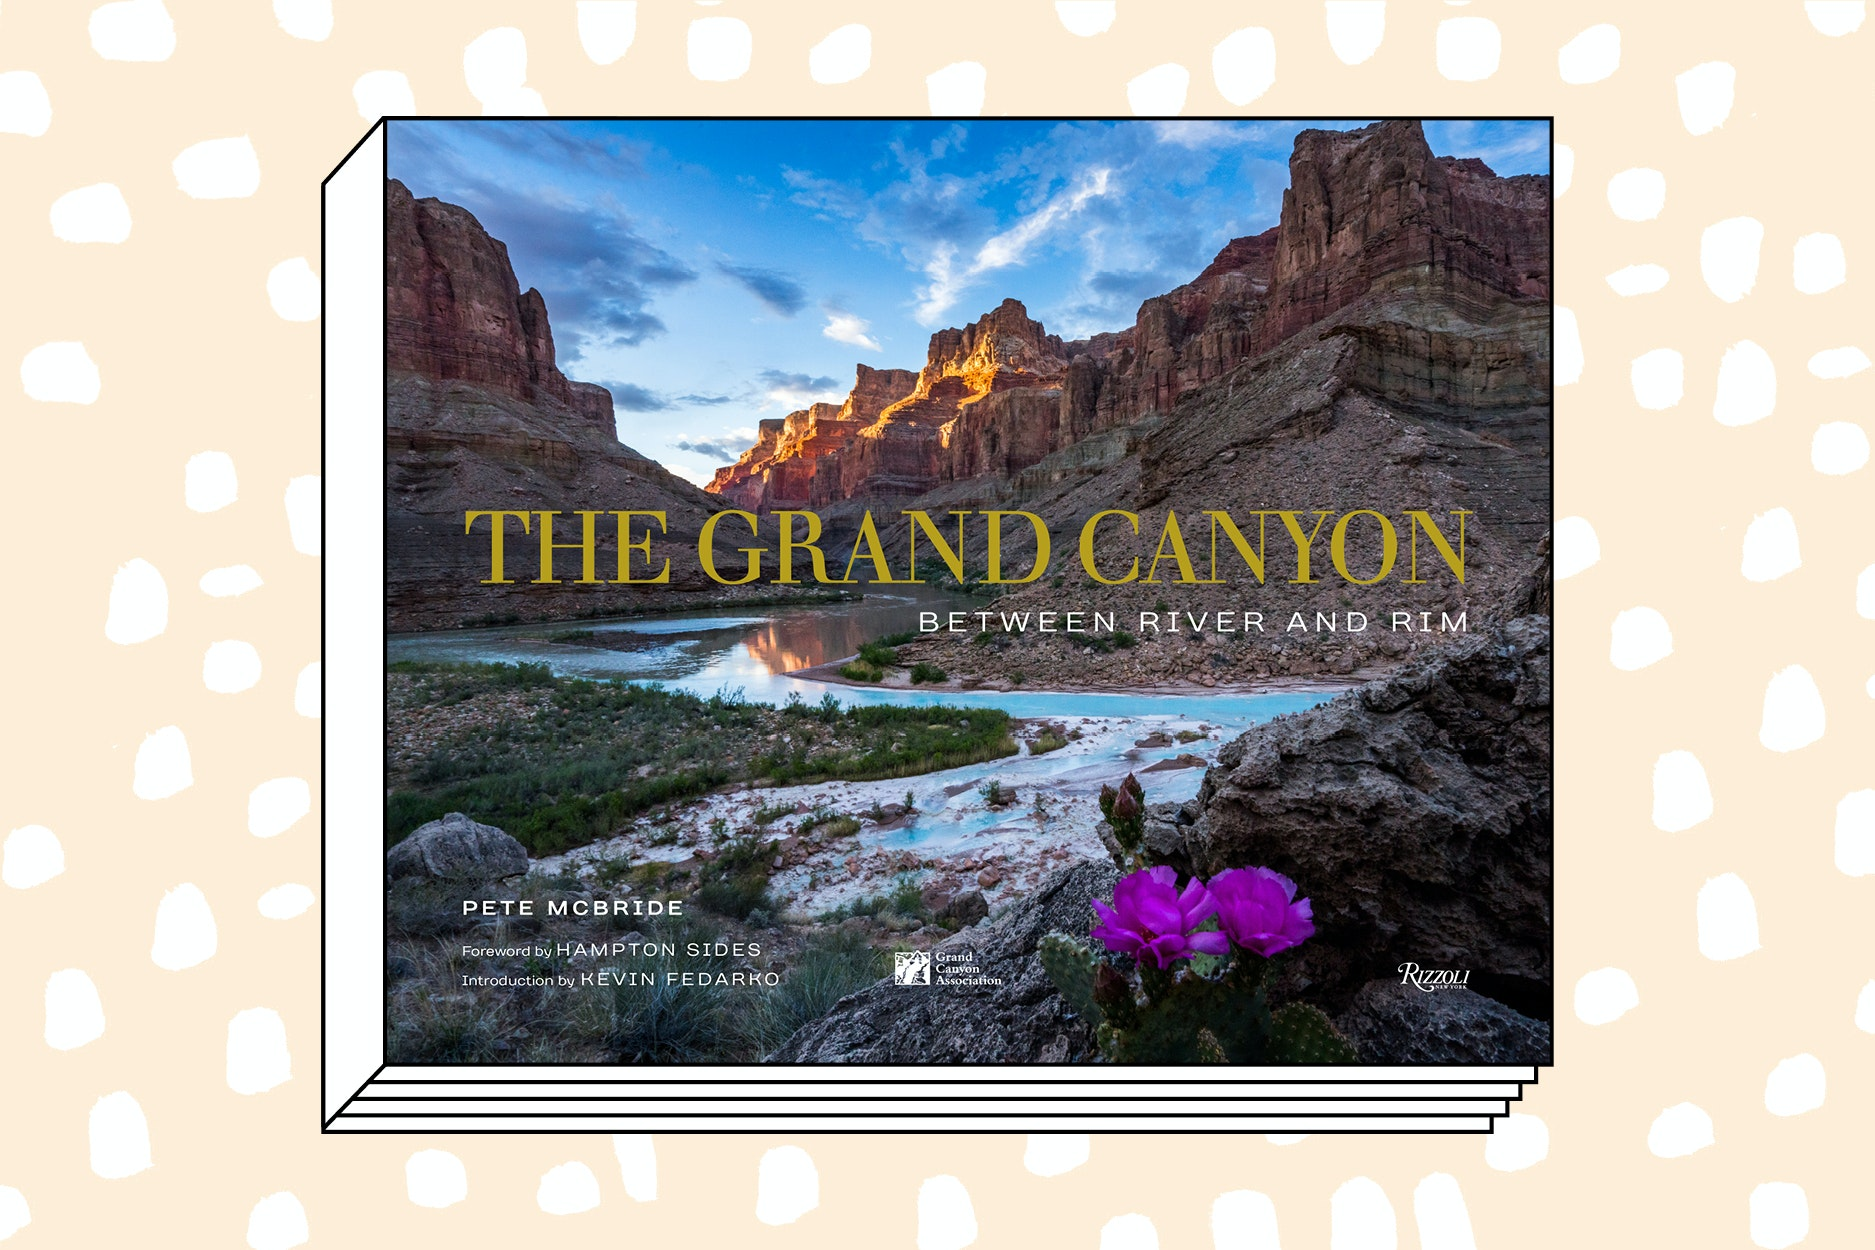 The Grand Canyon: Between River and Rim (Rizzoli, 2018)